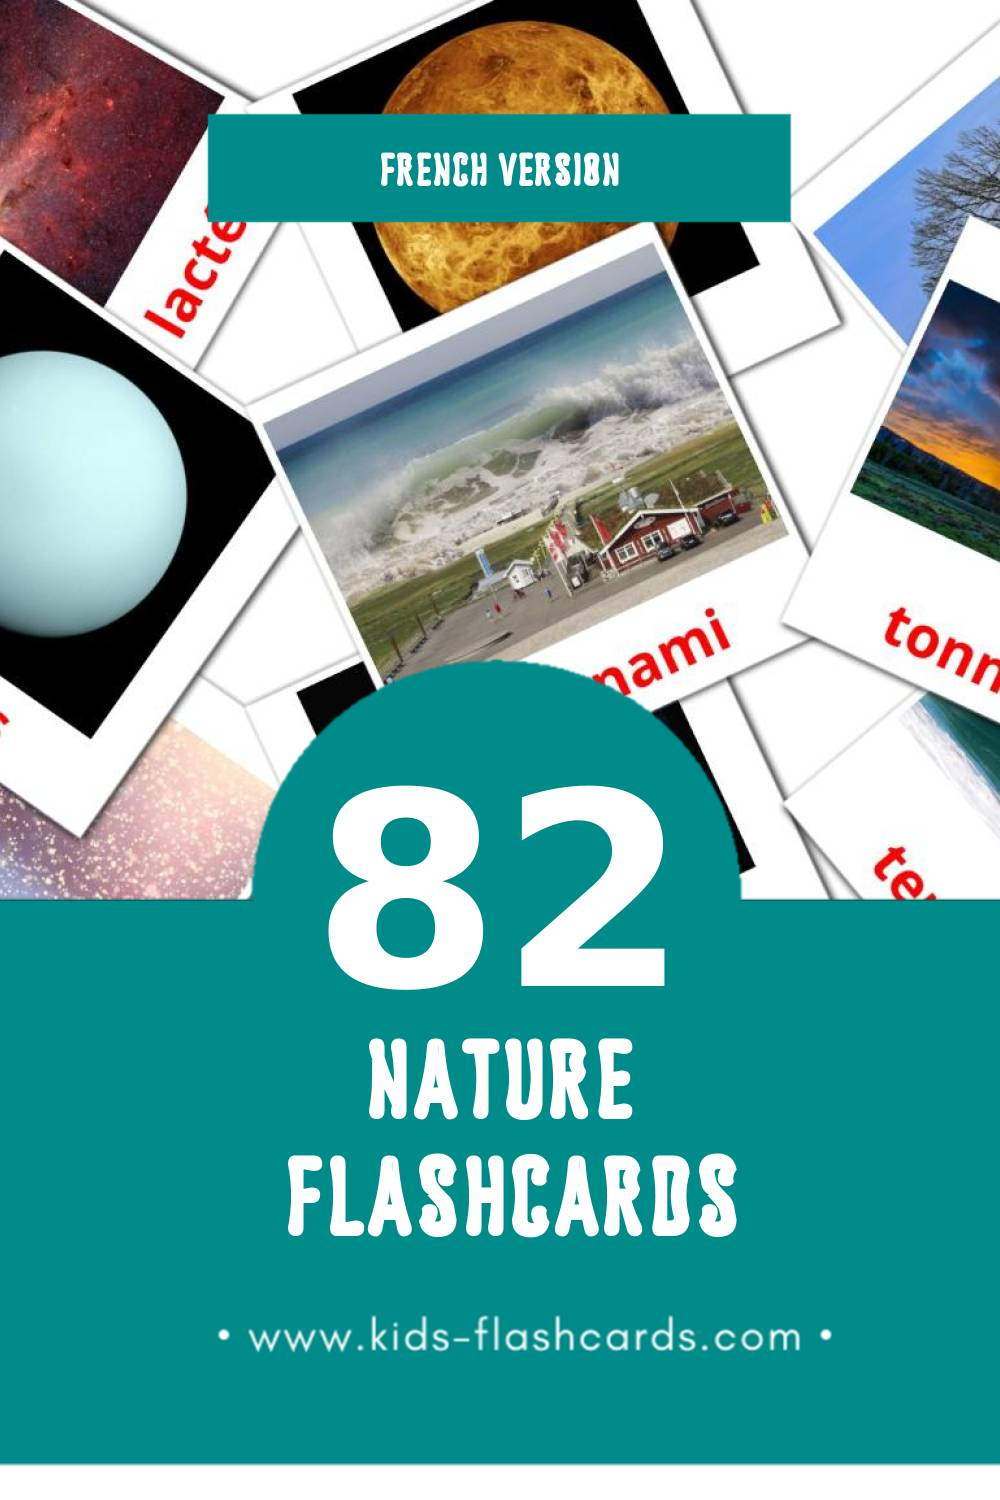 31 Free Nature Flashcards in French (PDF files)